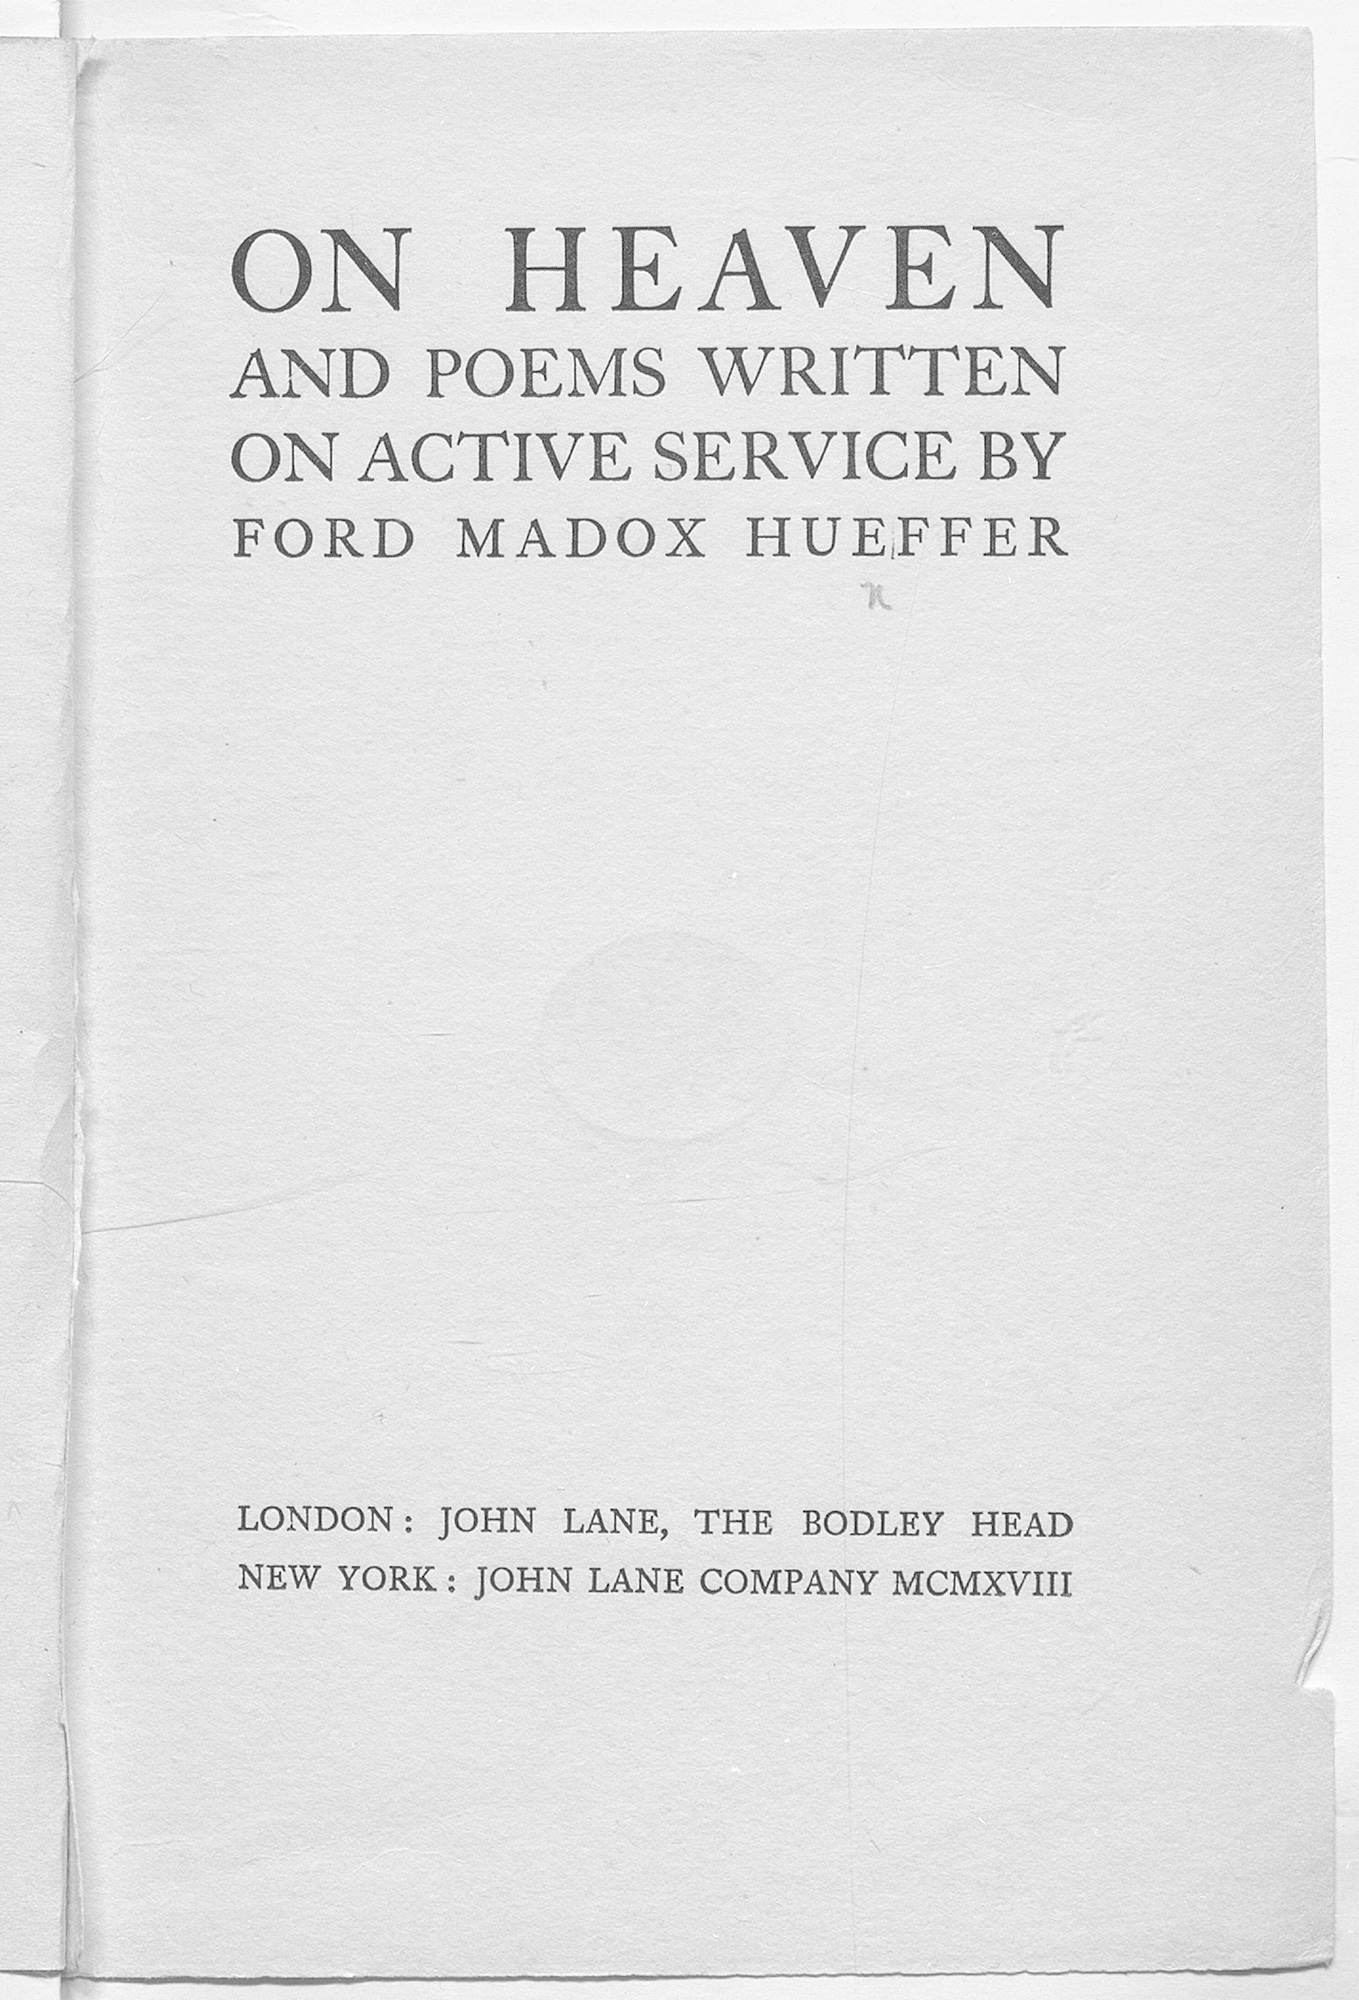 On Heaven and poems was a collection of poems written on active service by Ford Maddox Ford.